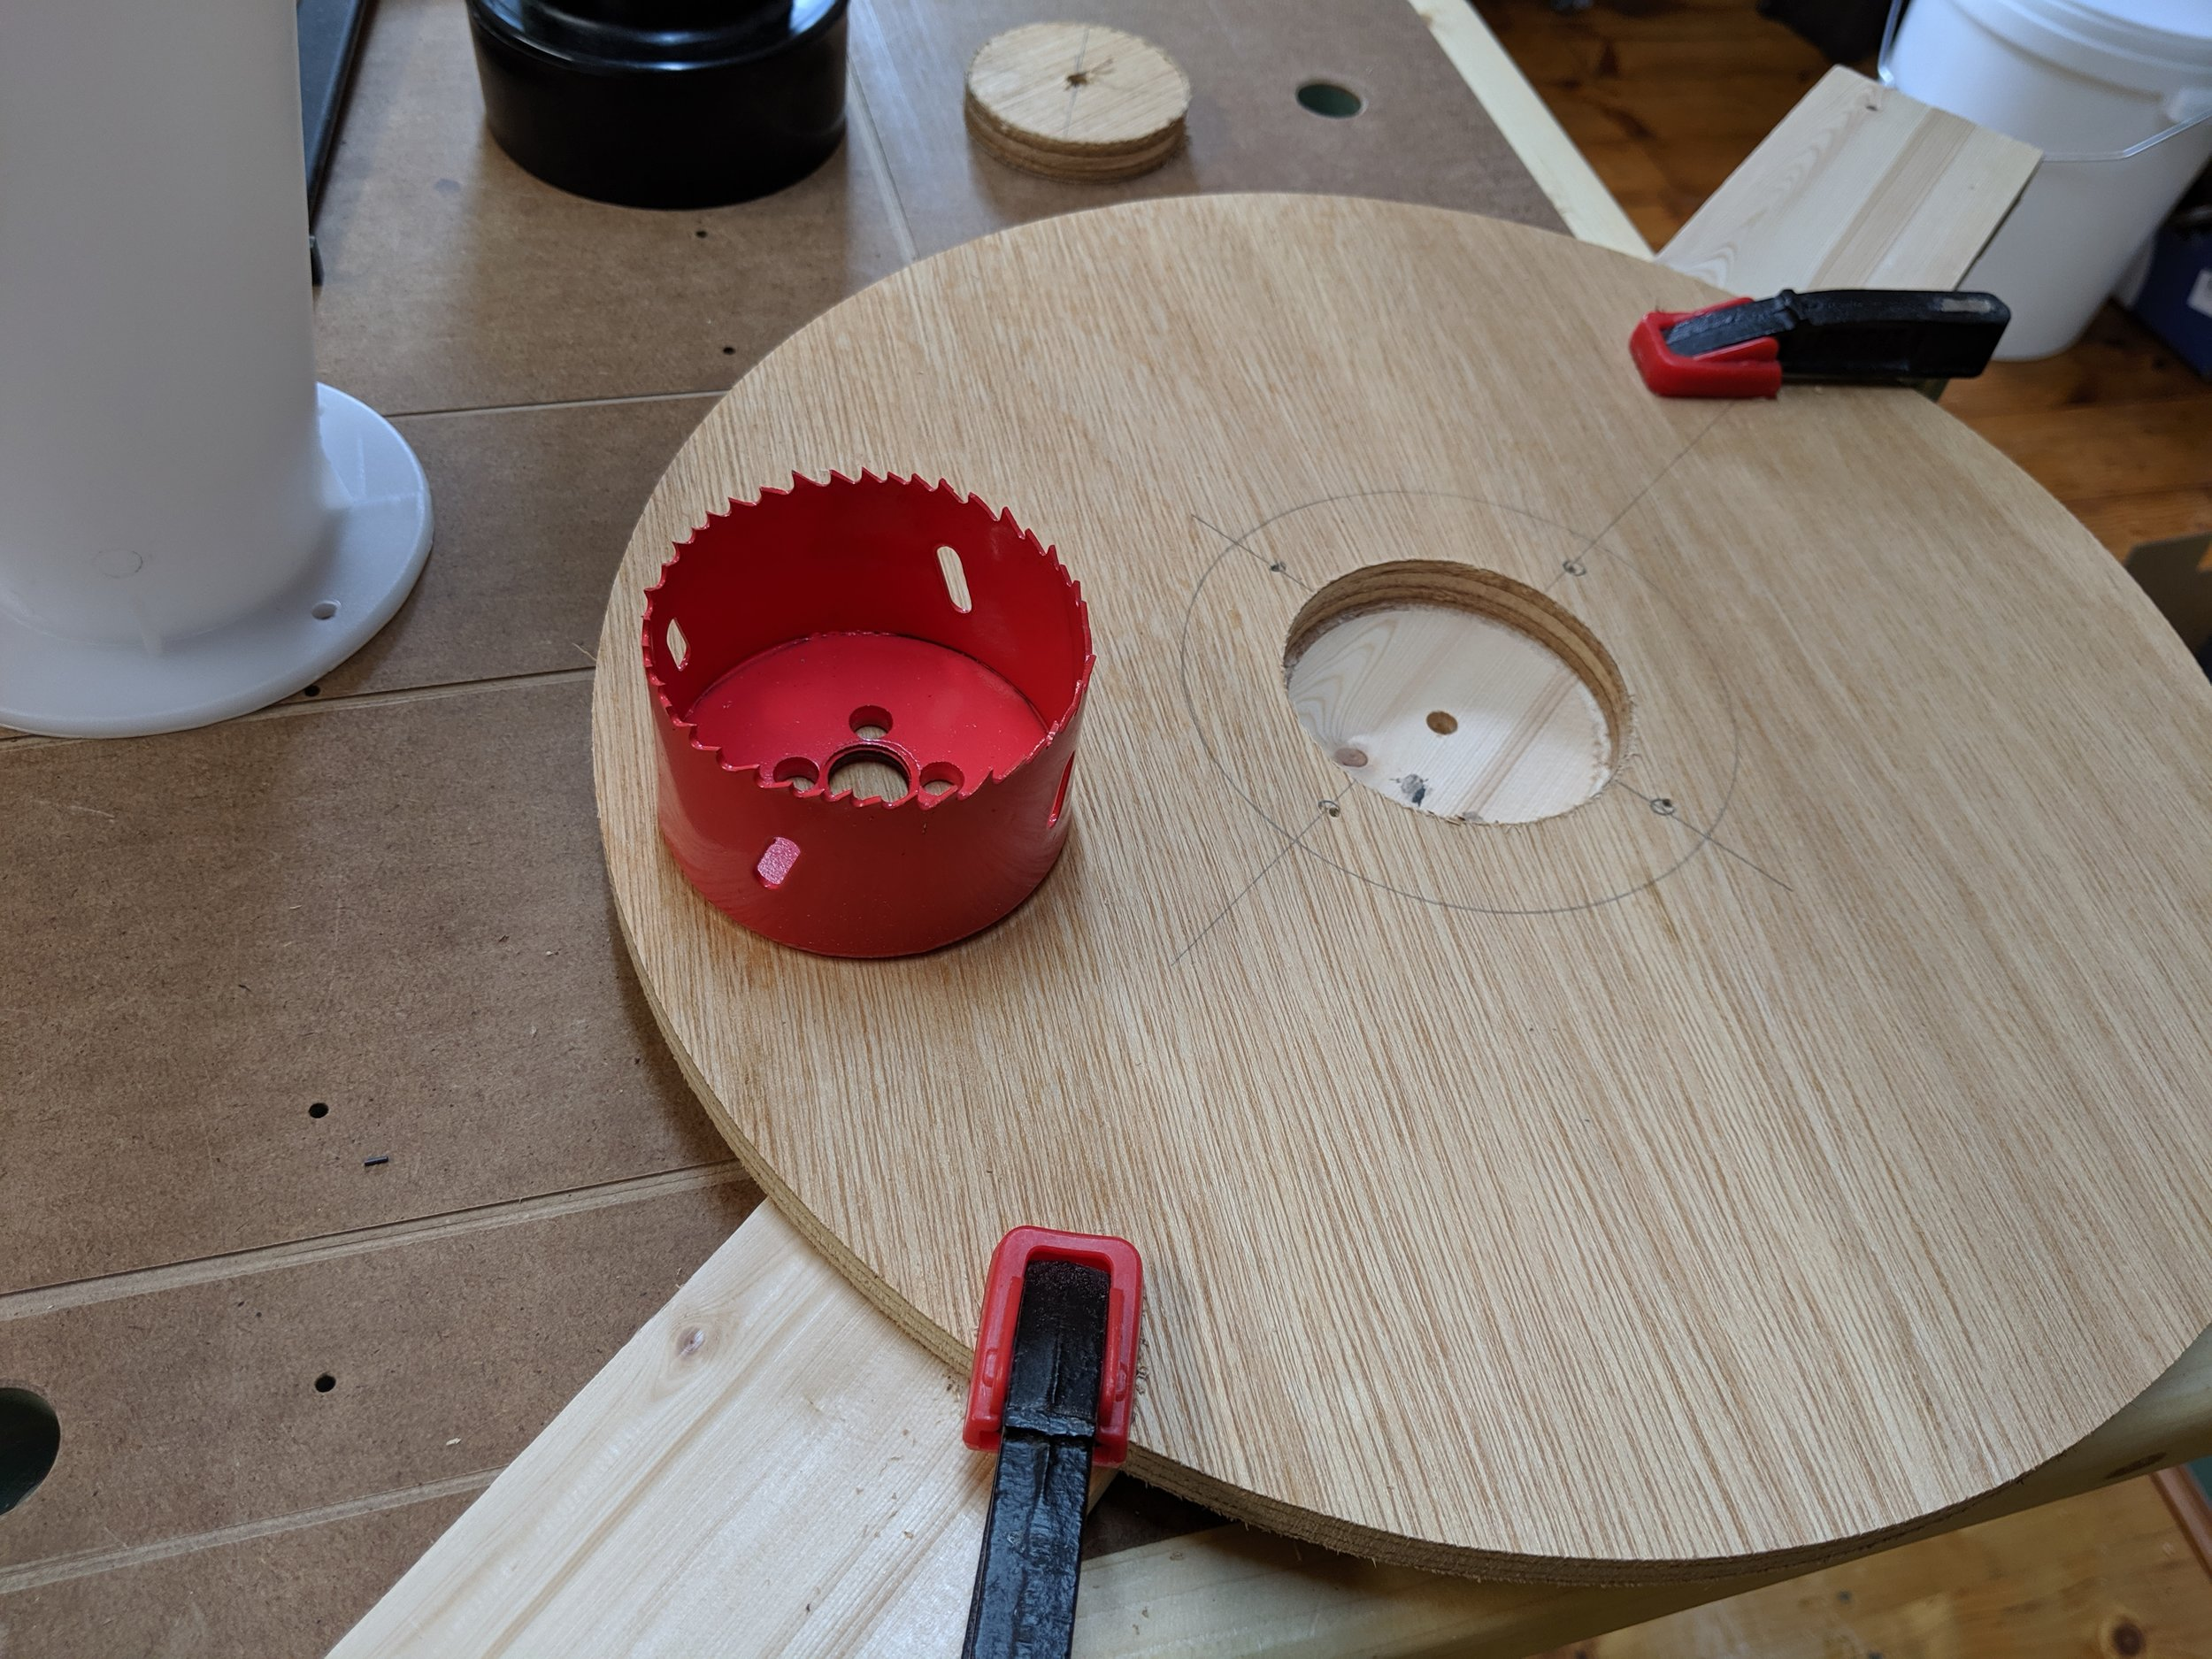 Hand held hole saw worked